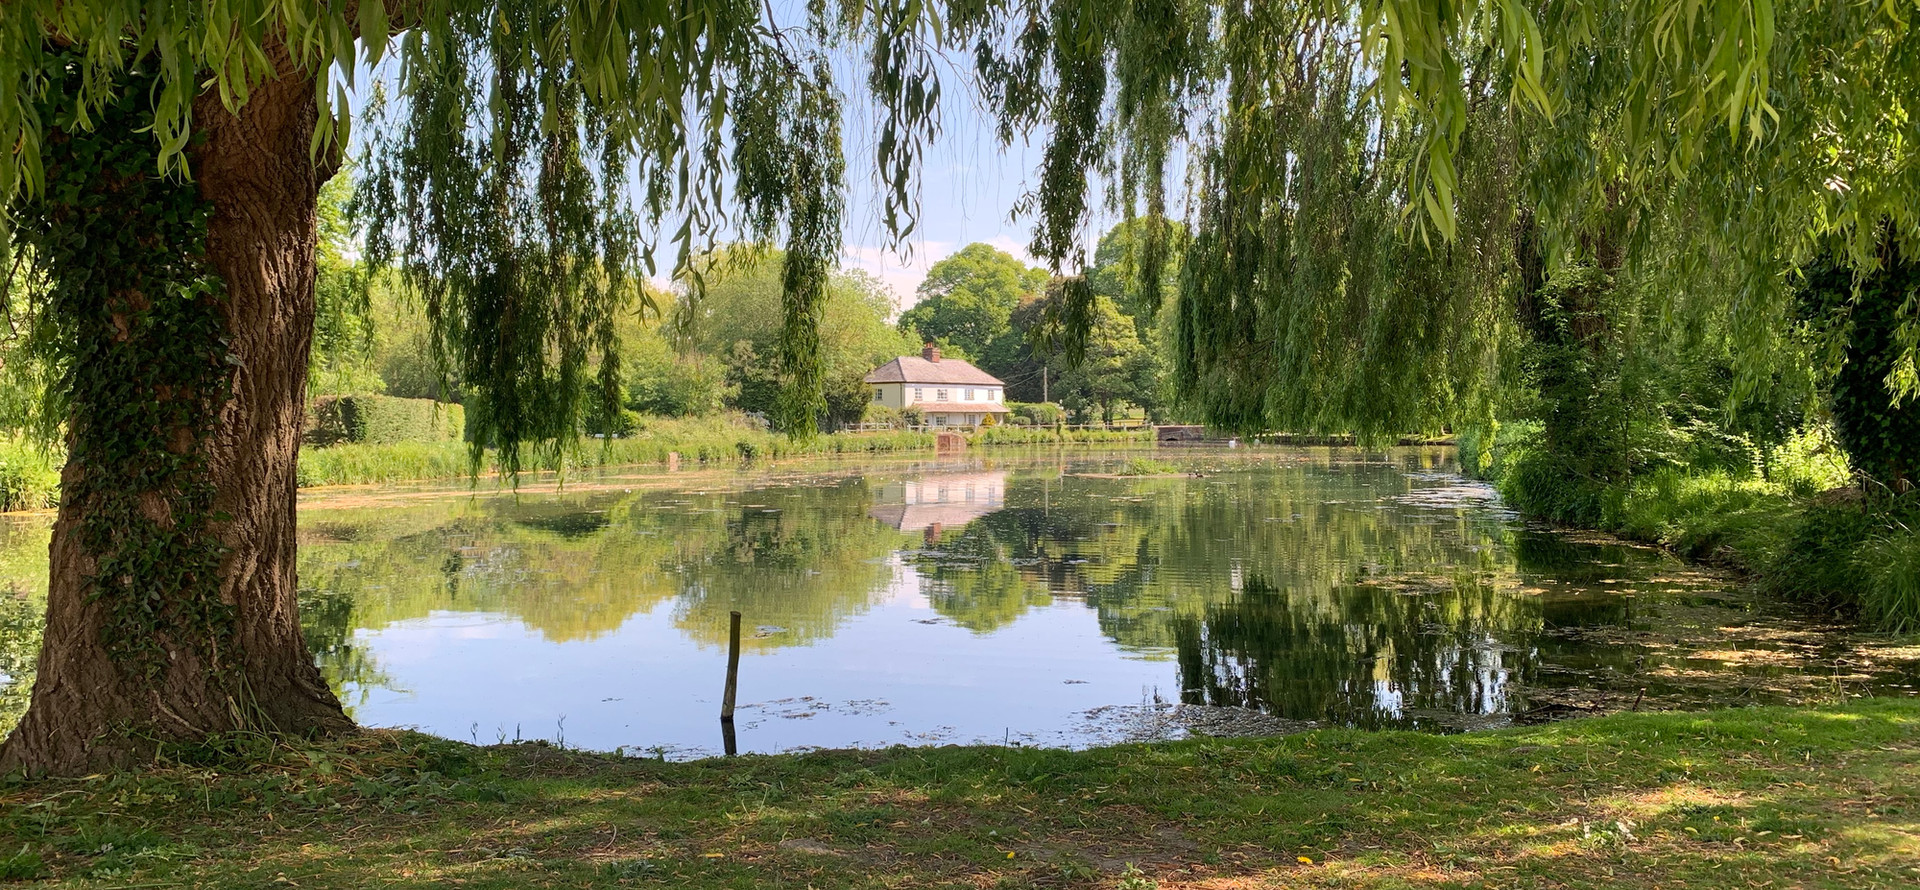 The Mill Pond at West Ashling looking through weeping willow tree